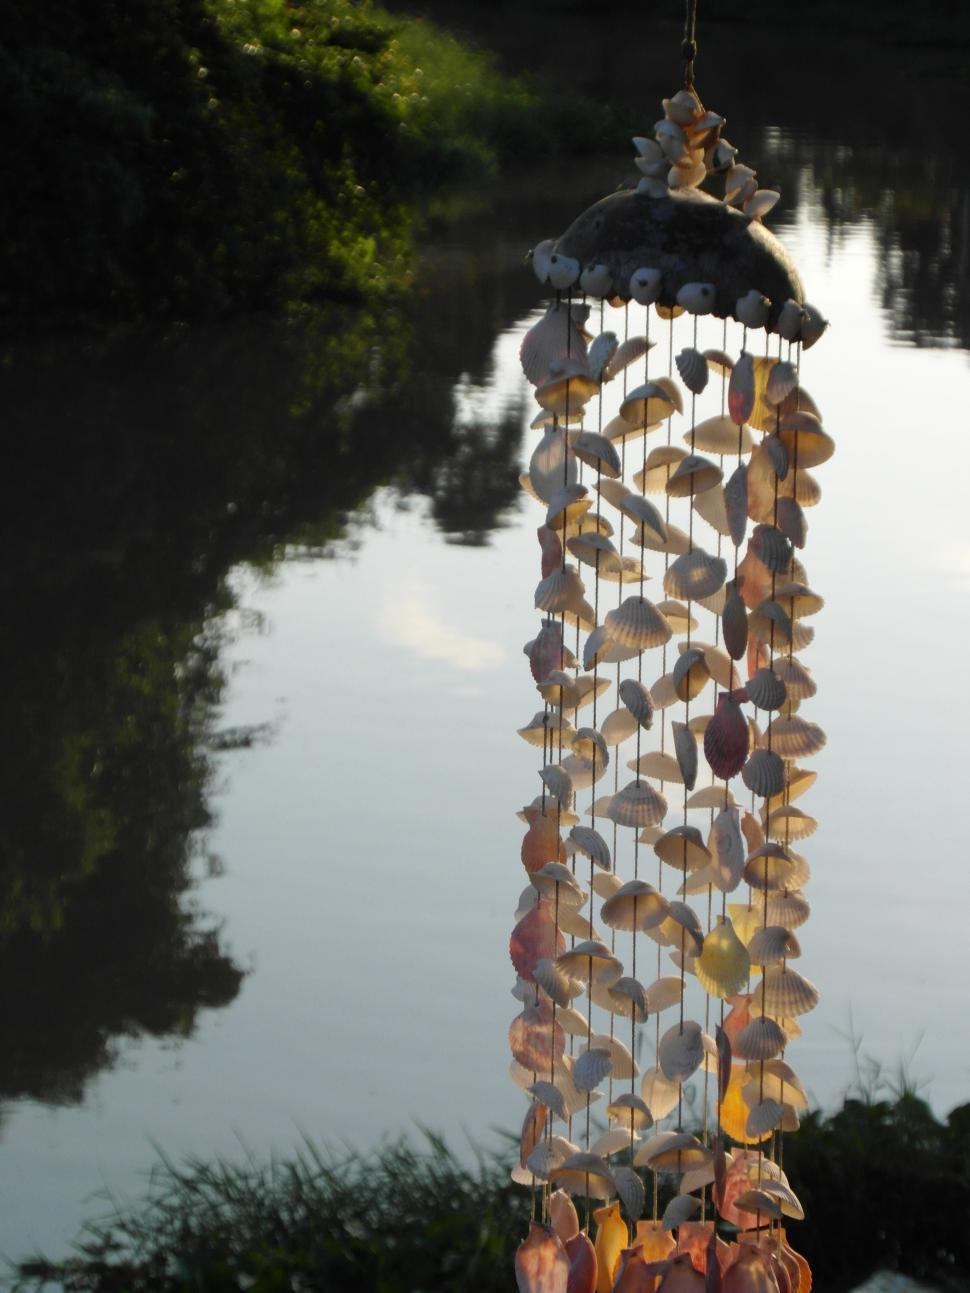 Download Free Stock HD Photo of Wind Chime of Shells Online